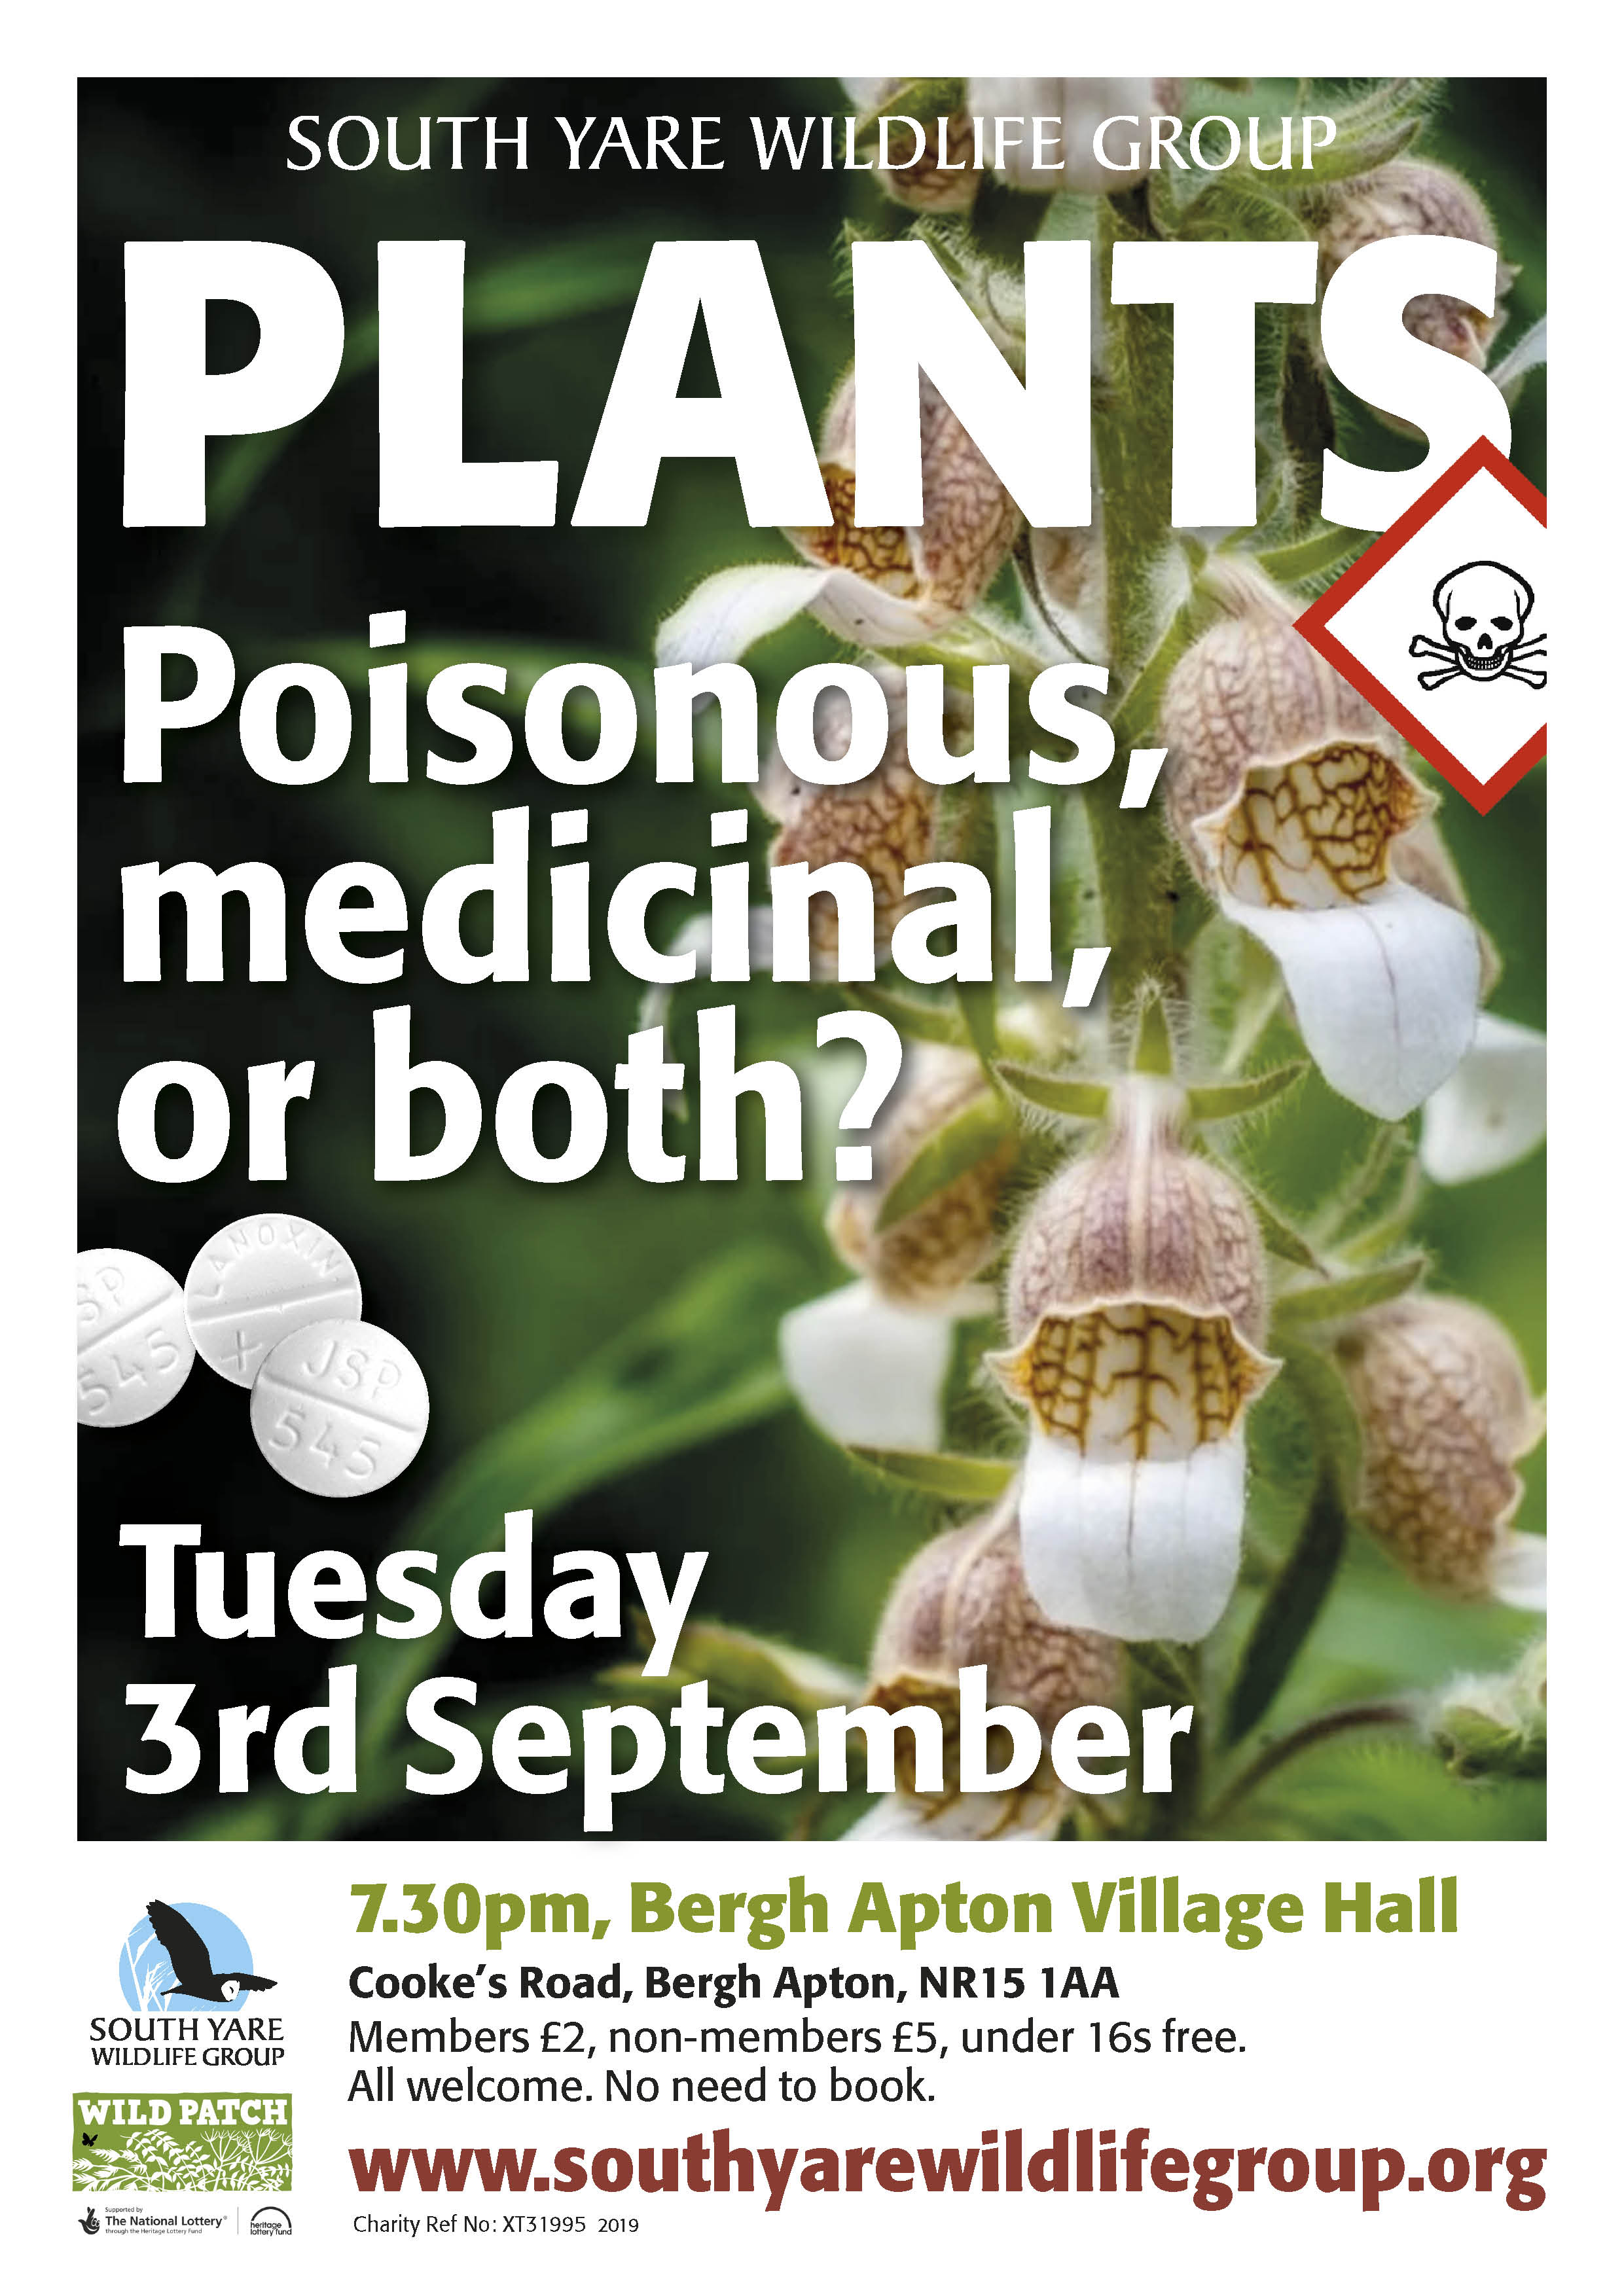 Plants: Poisonous, medicinal or both? | South Yare Wildlife